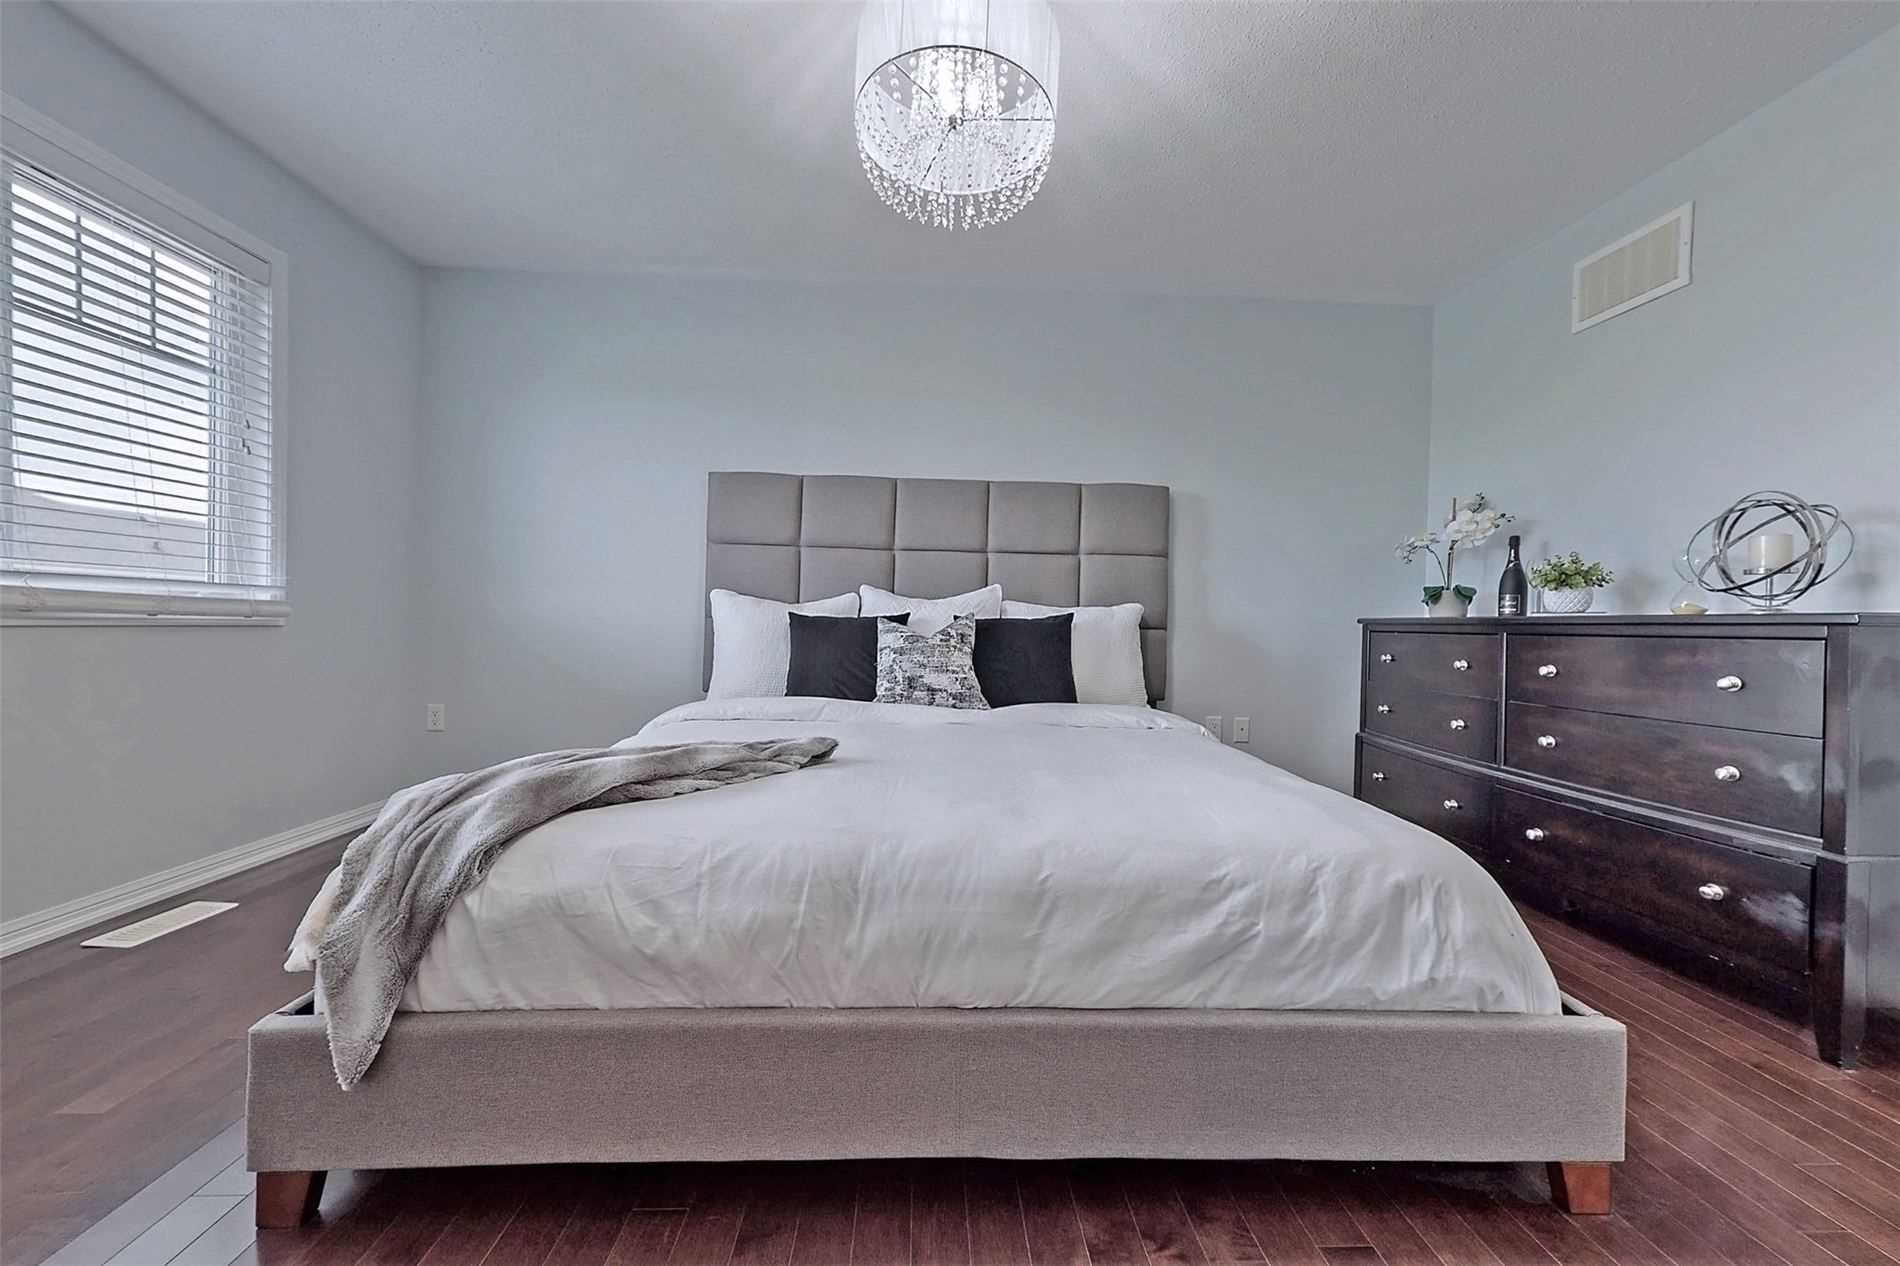 240 Leiterman Dr - Willmont Detached for sale, 3 Bedrooms (W5398871) - #19